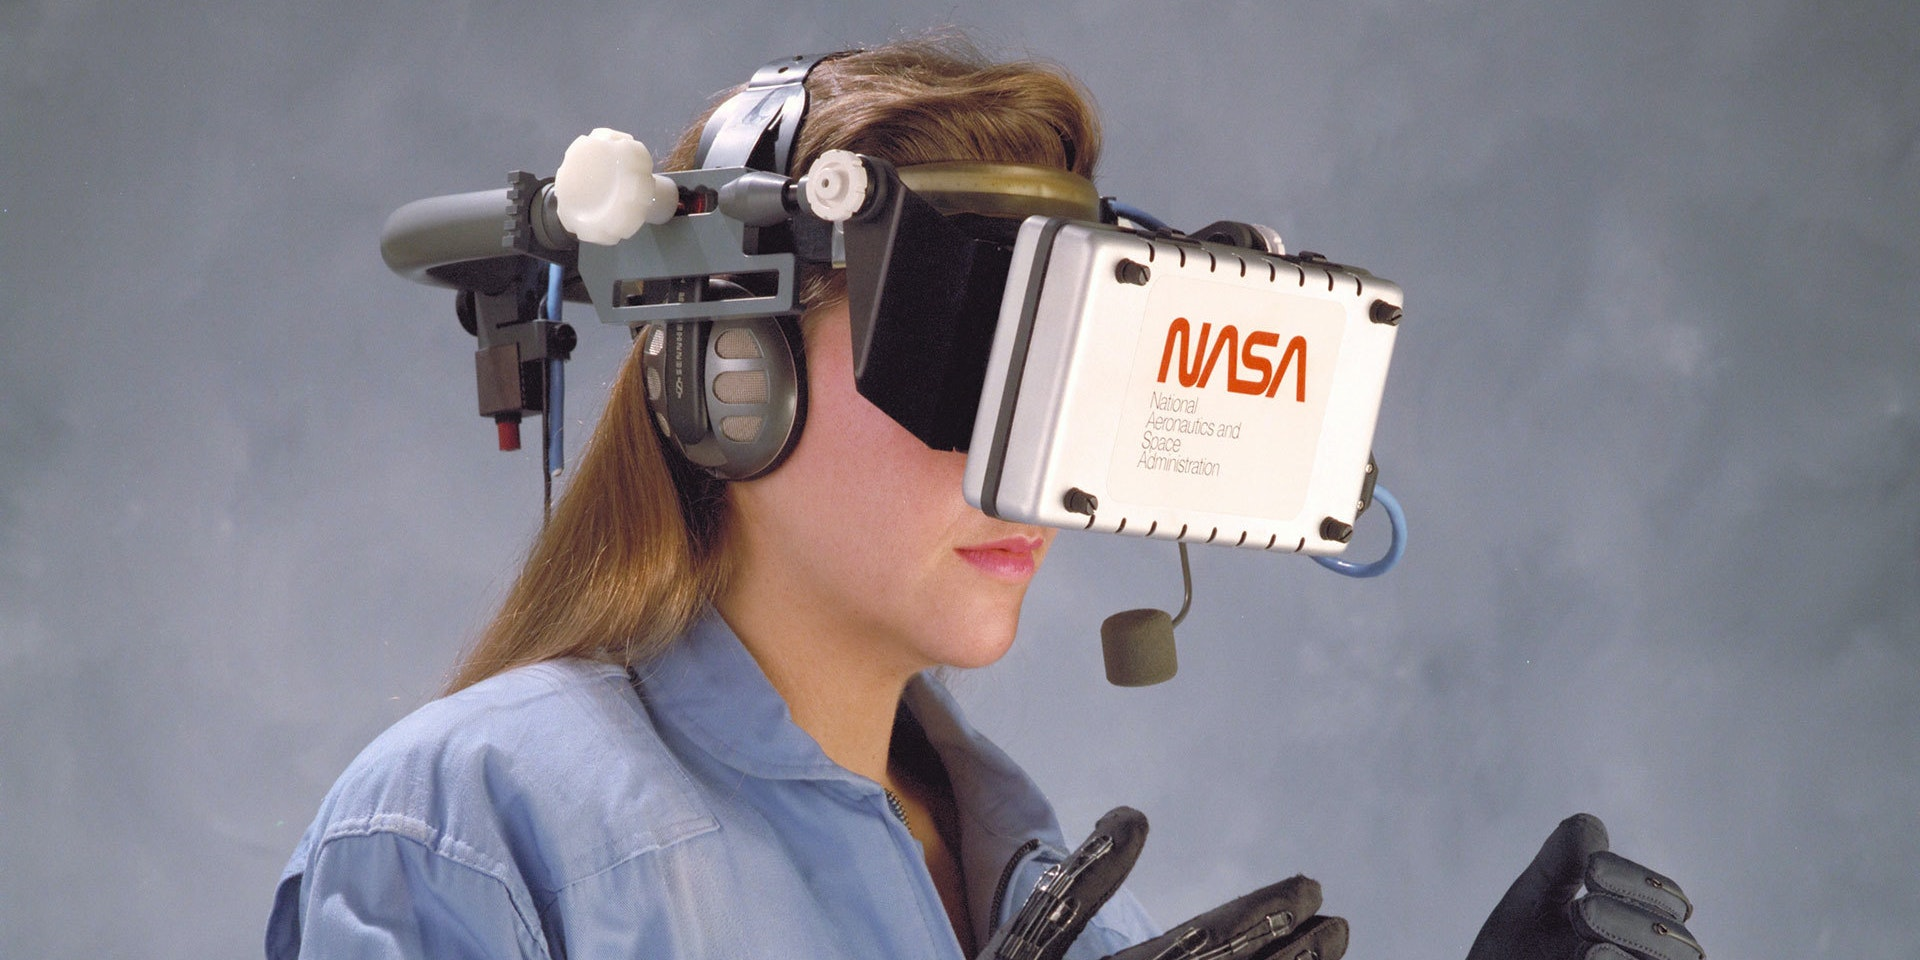 NASA says virtual reality will be standard equipment within 10 years.